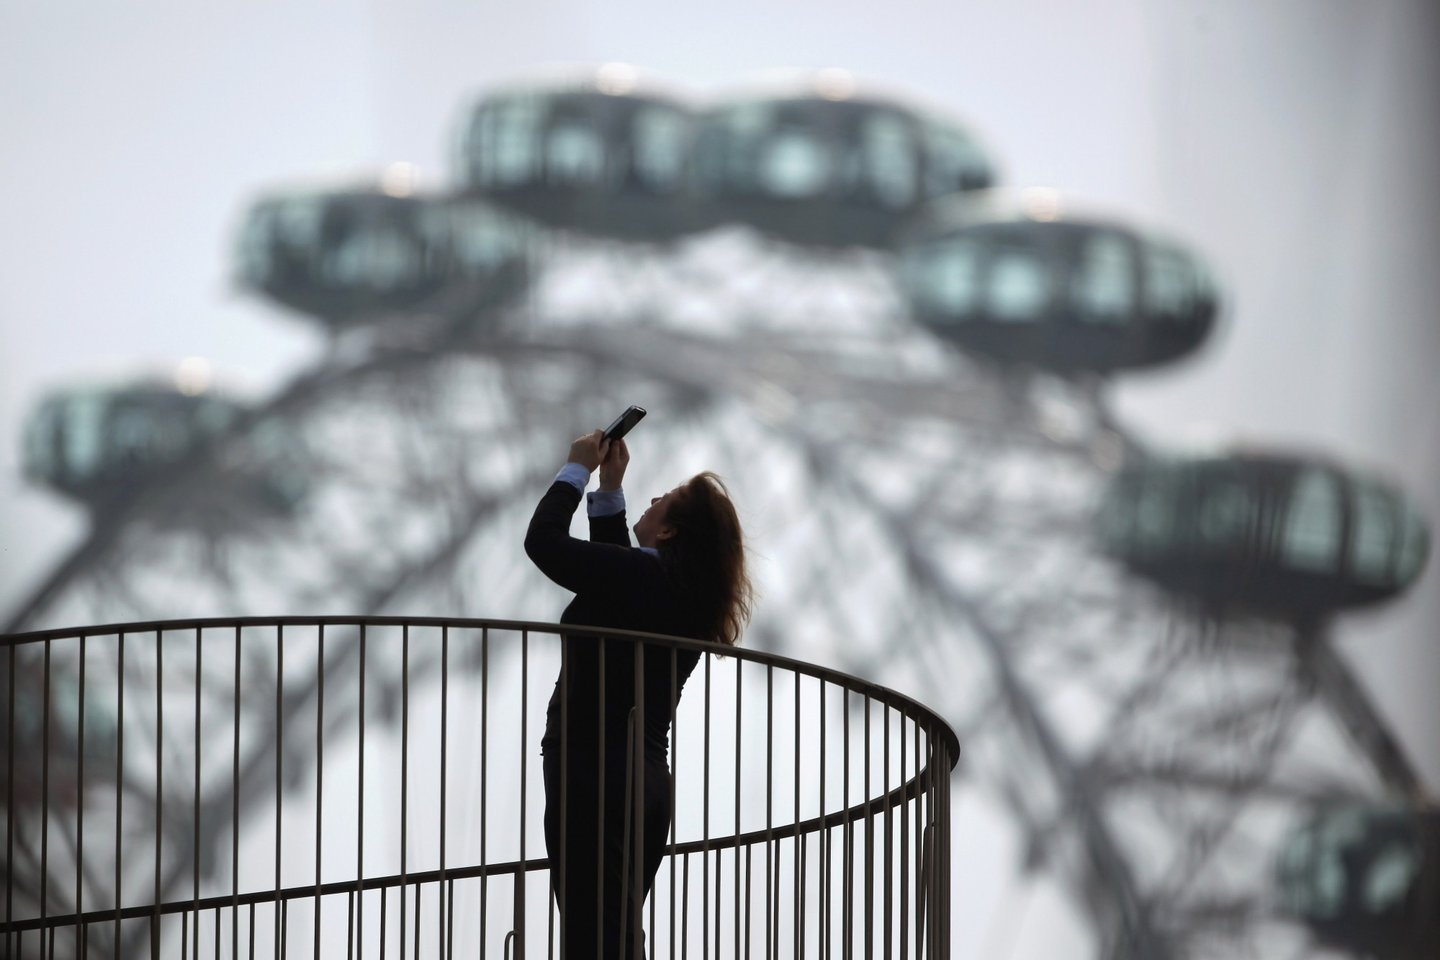 LONDON, ENGLAND - MARCH 22: A woman takes a photograph from a balcony near the London Eye on March 22, 2012 in London, England. A full rotation of the giant Ferris wheel, the largest of it's kind in Europe, takes 30 minutes and rises to a height of 135 metres. On a clear day one can see for 40km from the top. (Photo by Dan Kitwood/Getty Images)